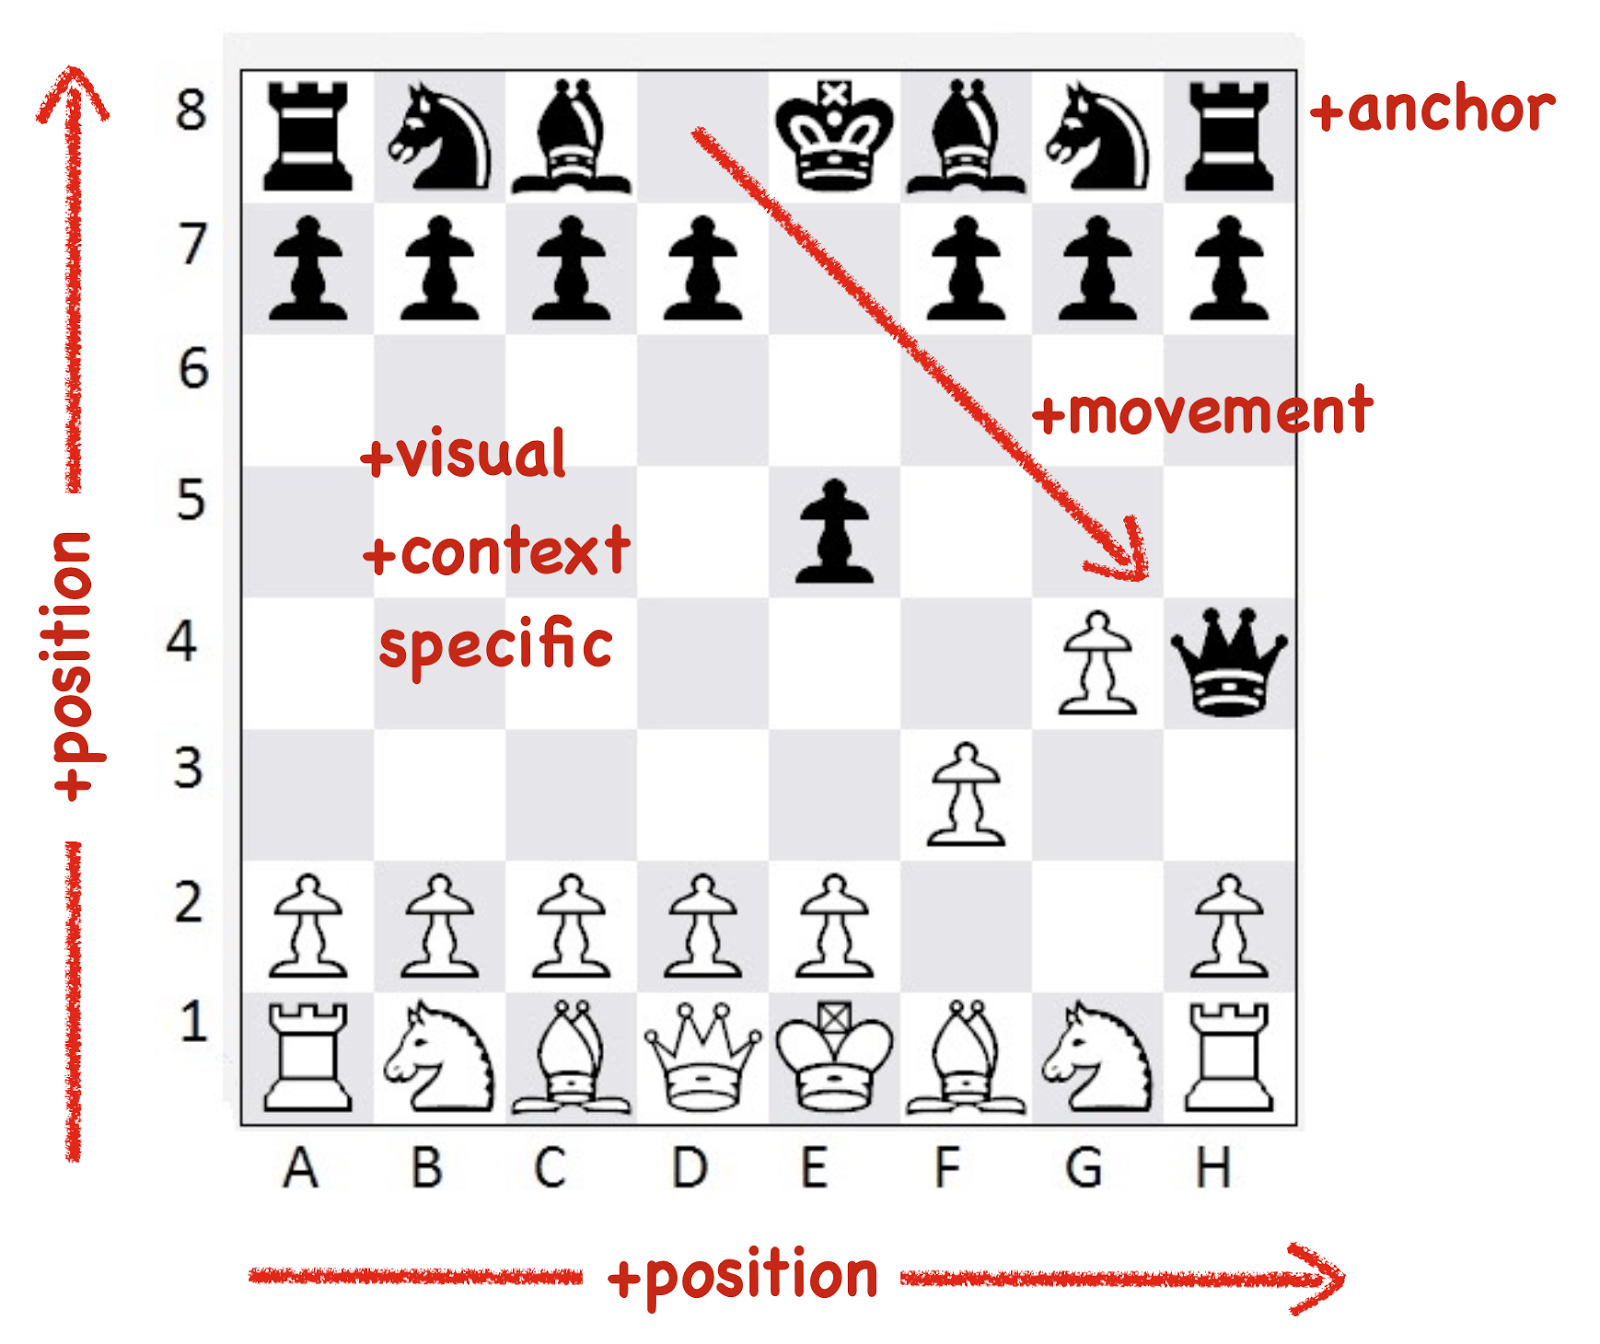 two player chess vhdl Chess nd mthemtis in uk seondry shools dr neill  or on either of the two  2015 getting started with vhdl 2 top-down design vhdl history min elements.